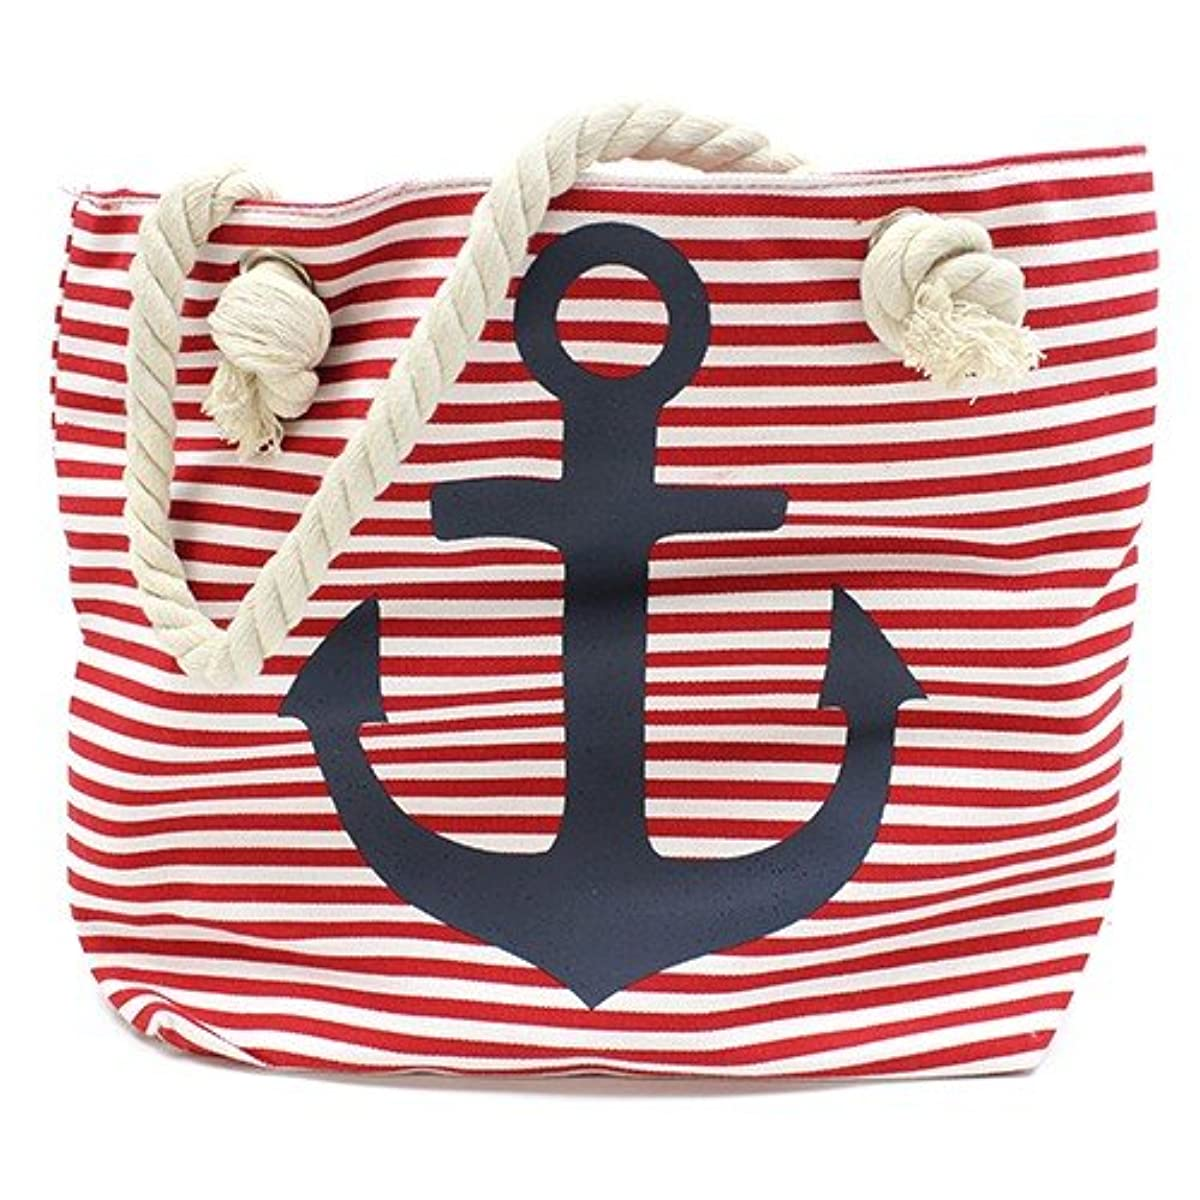 AW Beach Bag, Cotton, Red, 43?x 33?x 5?cm